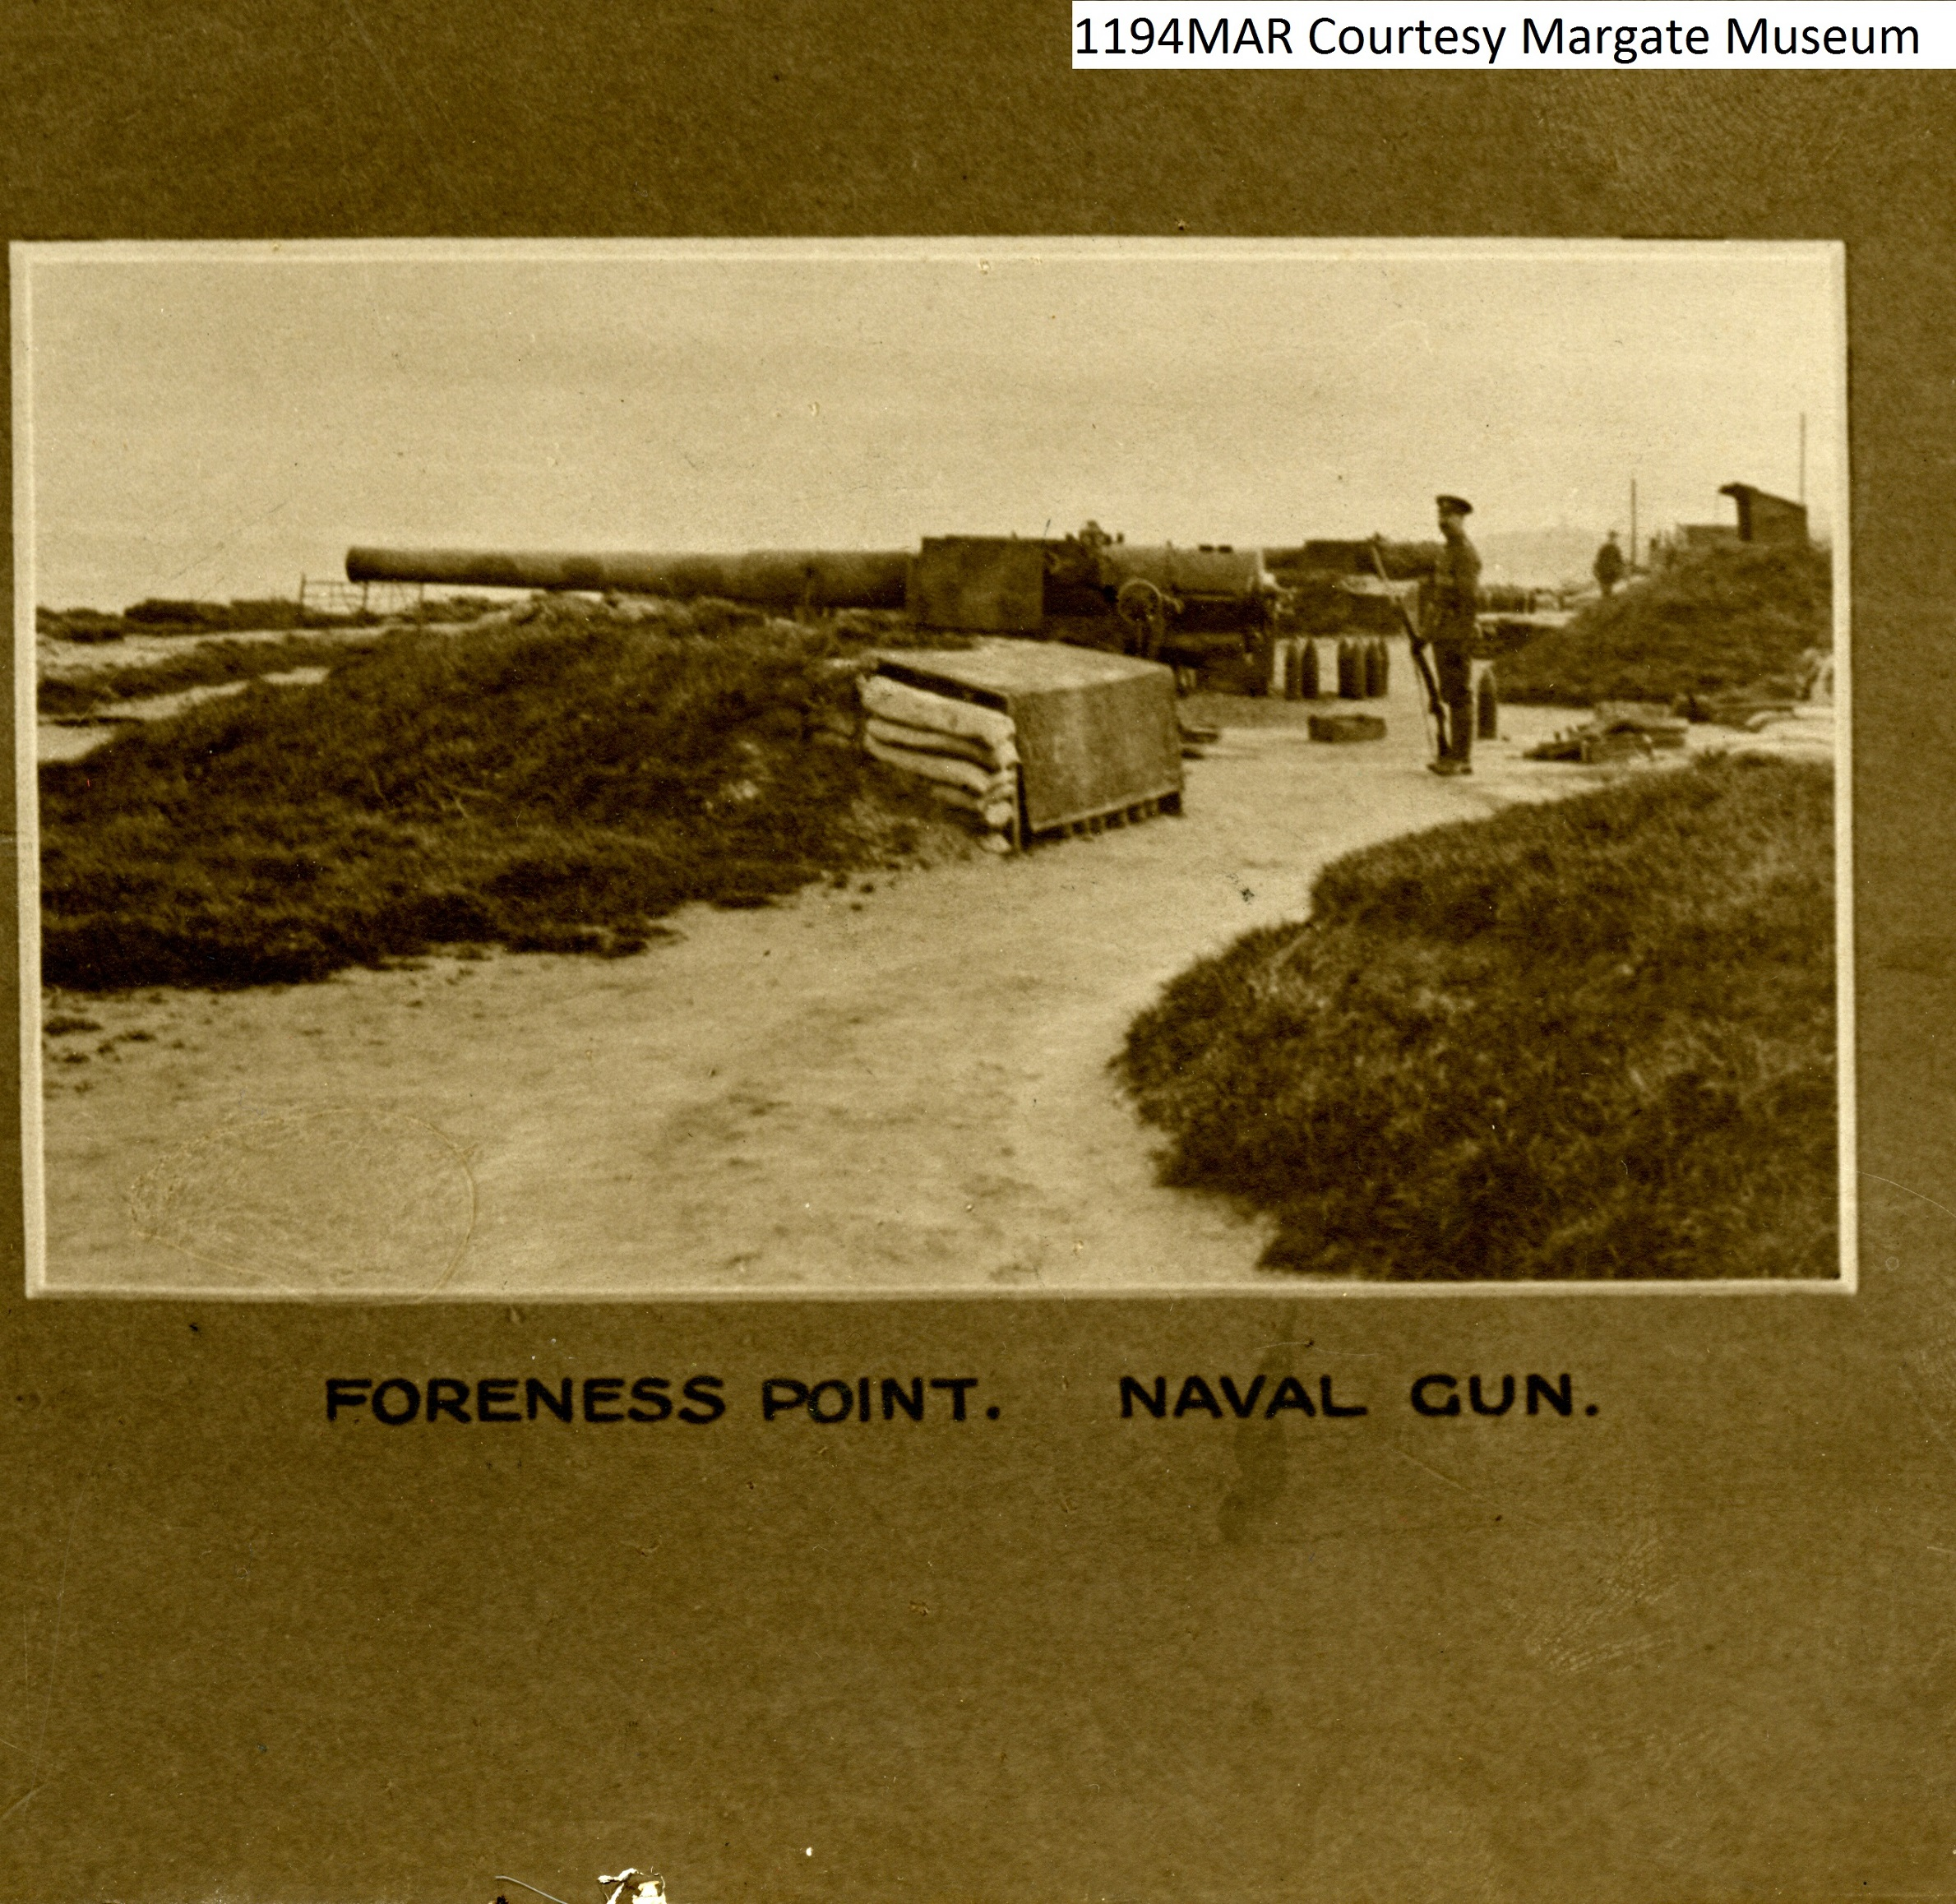 Foreness Point